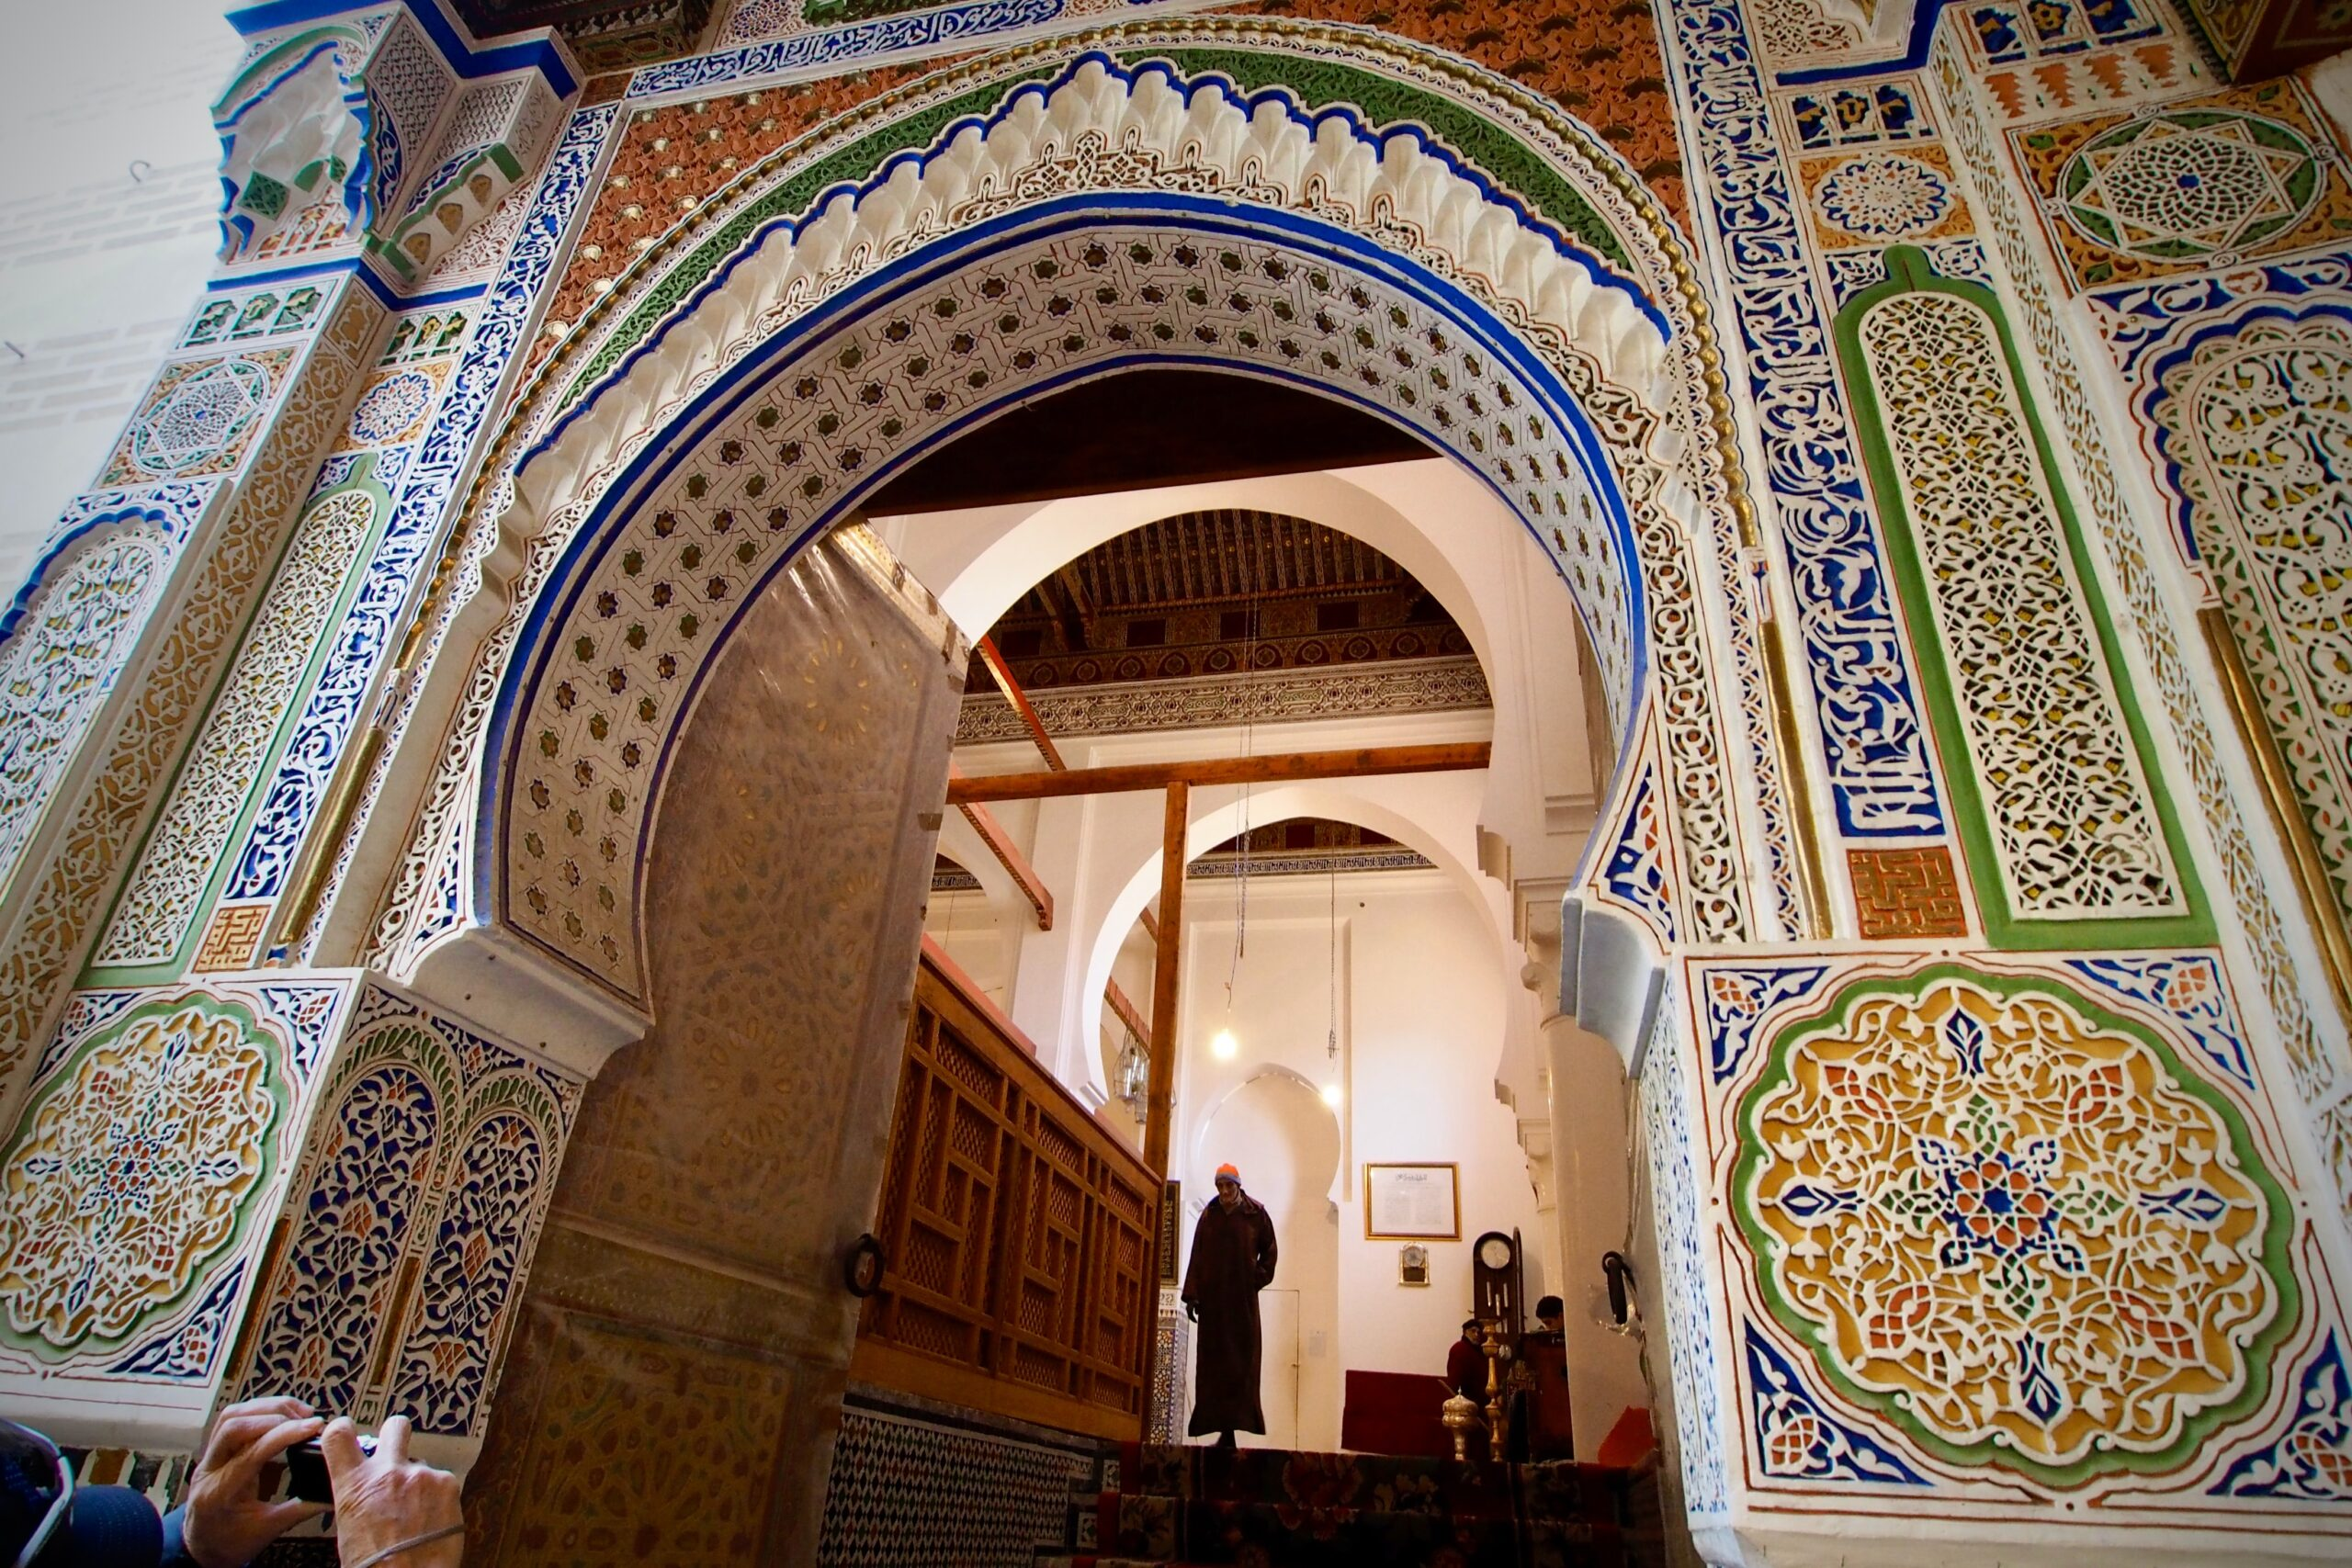 Stunning Faz Architecture - Fez Private Tour From Rabat